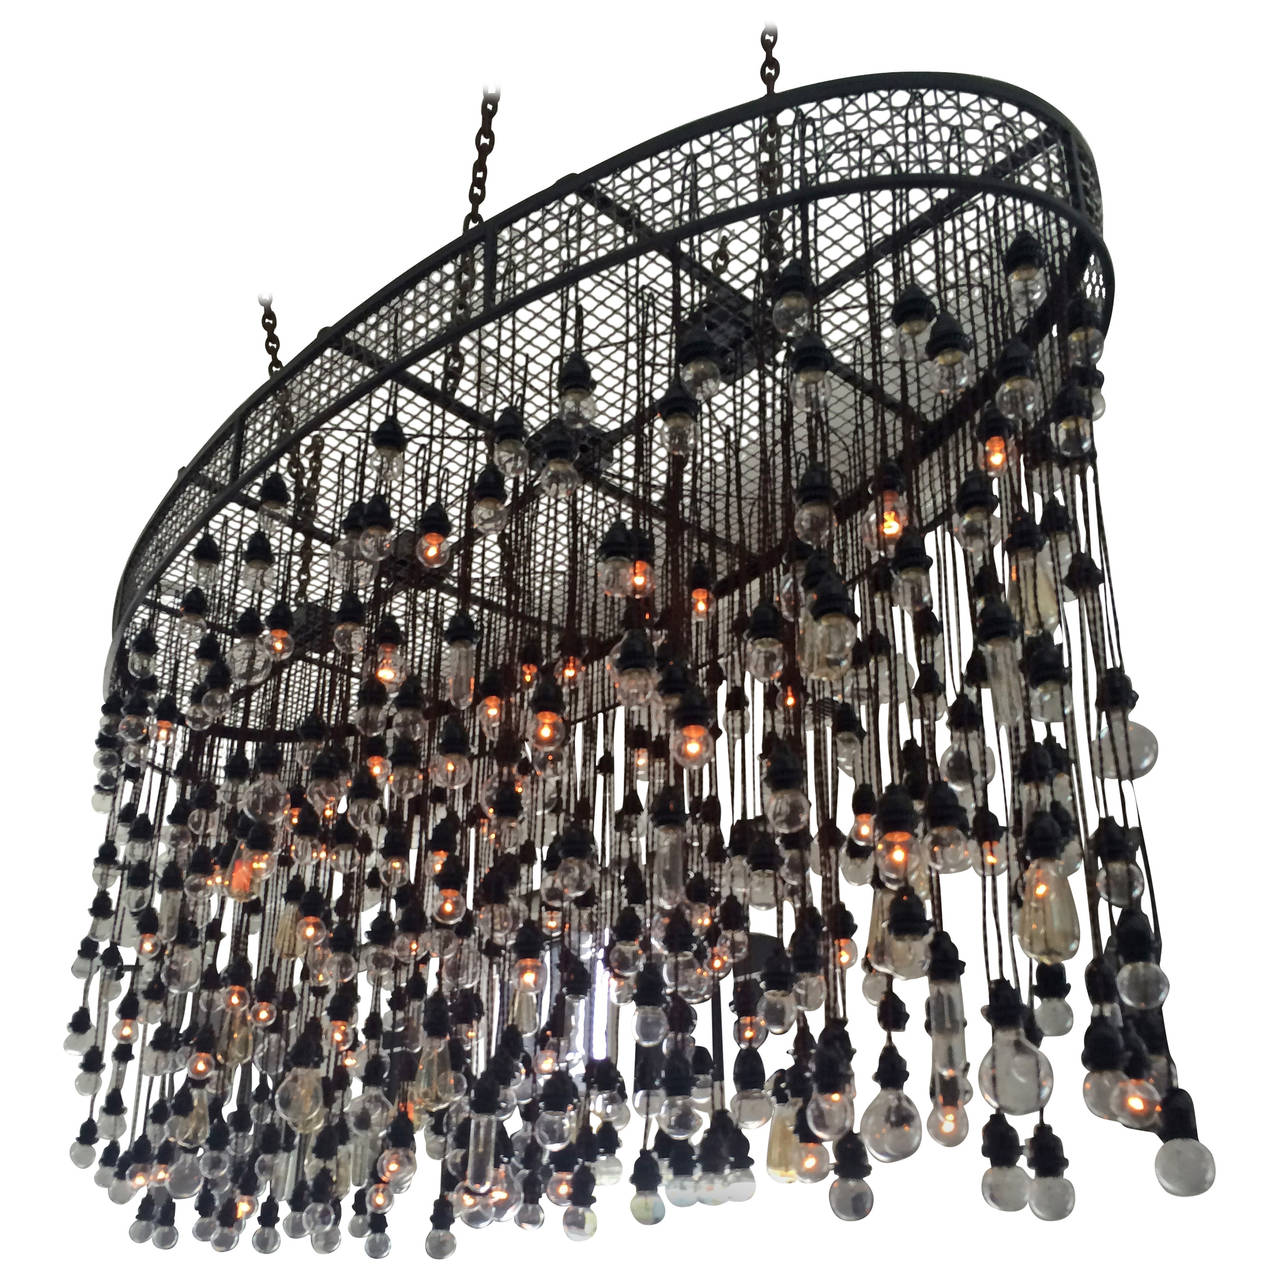 500 bulbs industrial chandelier for sale at 1stdibs 500 bulbs industrial chandelier for sale aloadofball Choice Image